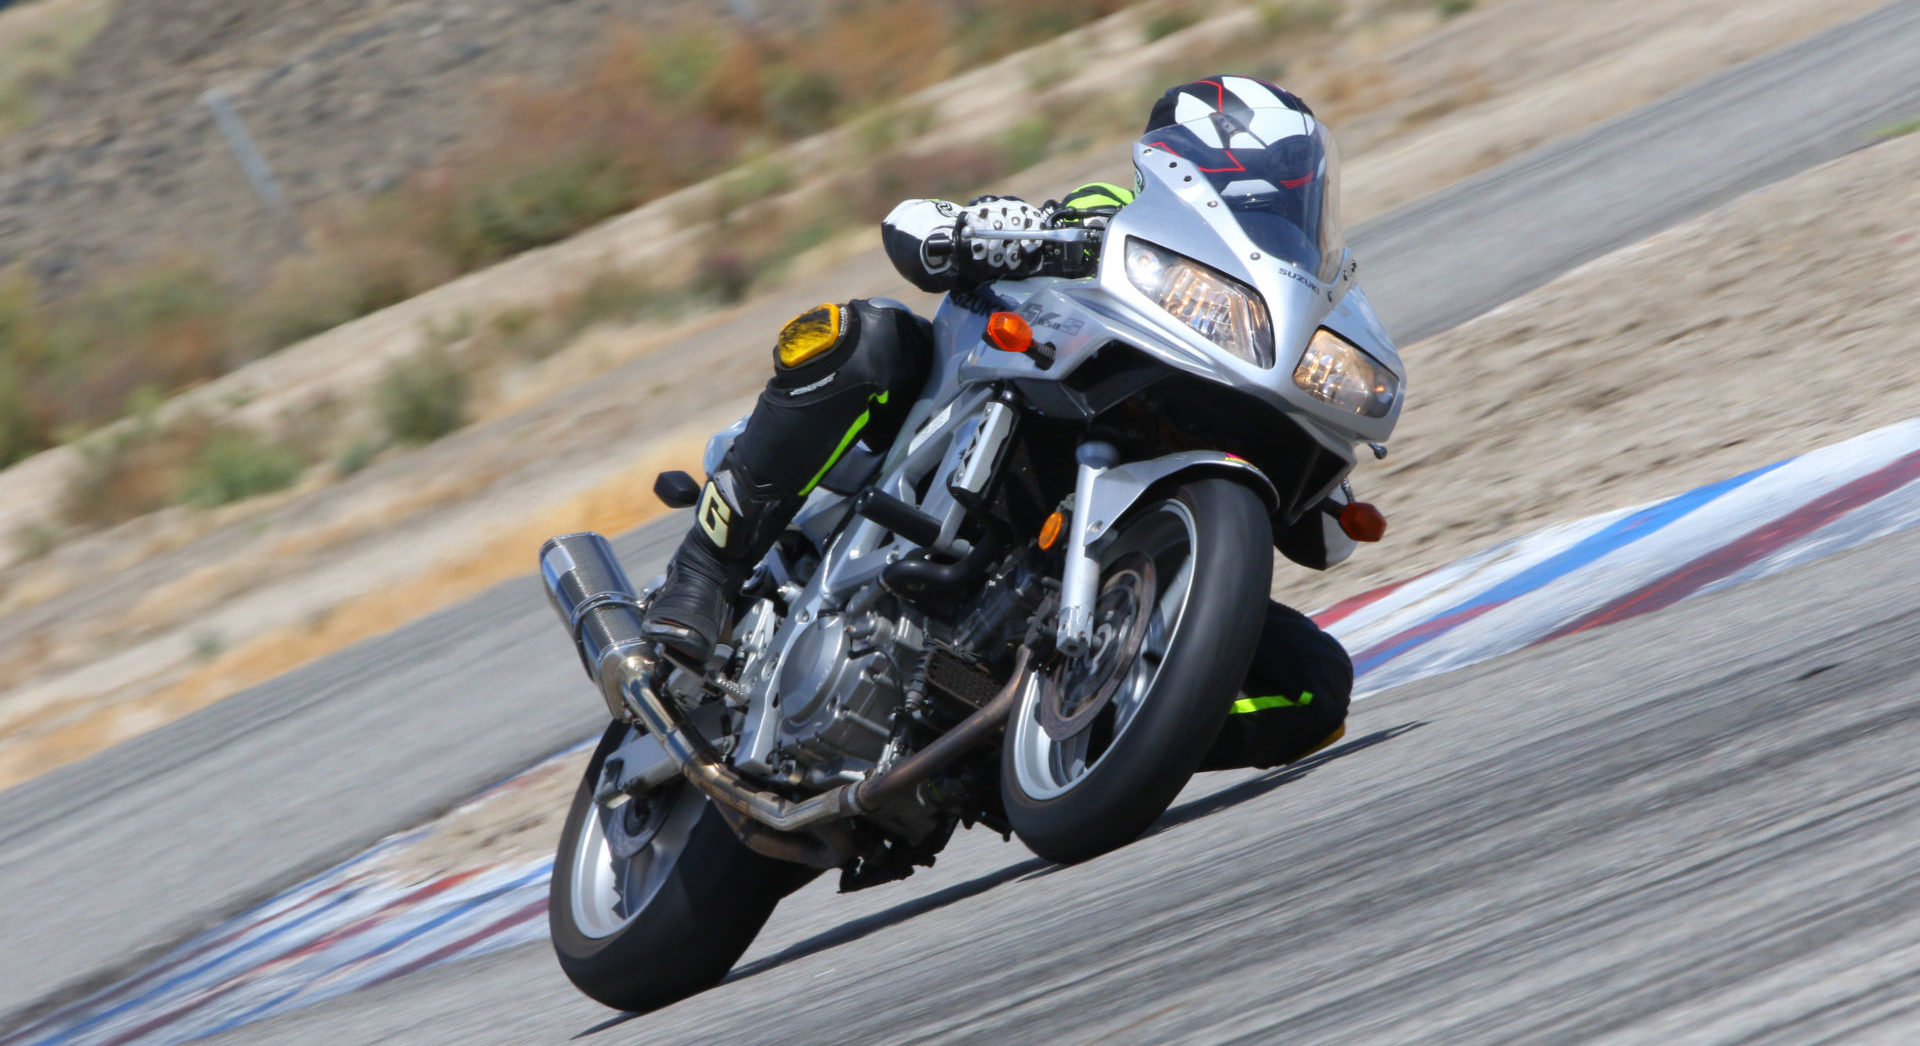 Even a well-used set of good performance radials can serve you well at a track day. The author on his beloved bargain blaster Suzuki SV650 with a set of year-old Dunlop RoadSport 2 radials at Buttonwillow Raceway Park. Photo by CaliPhotography.com.